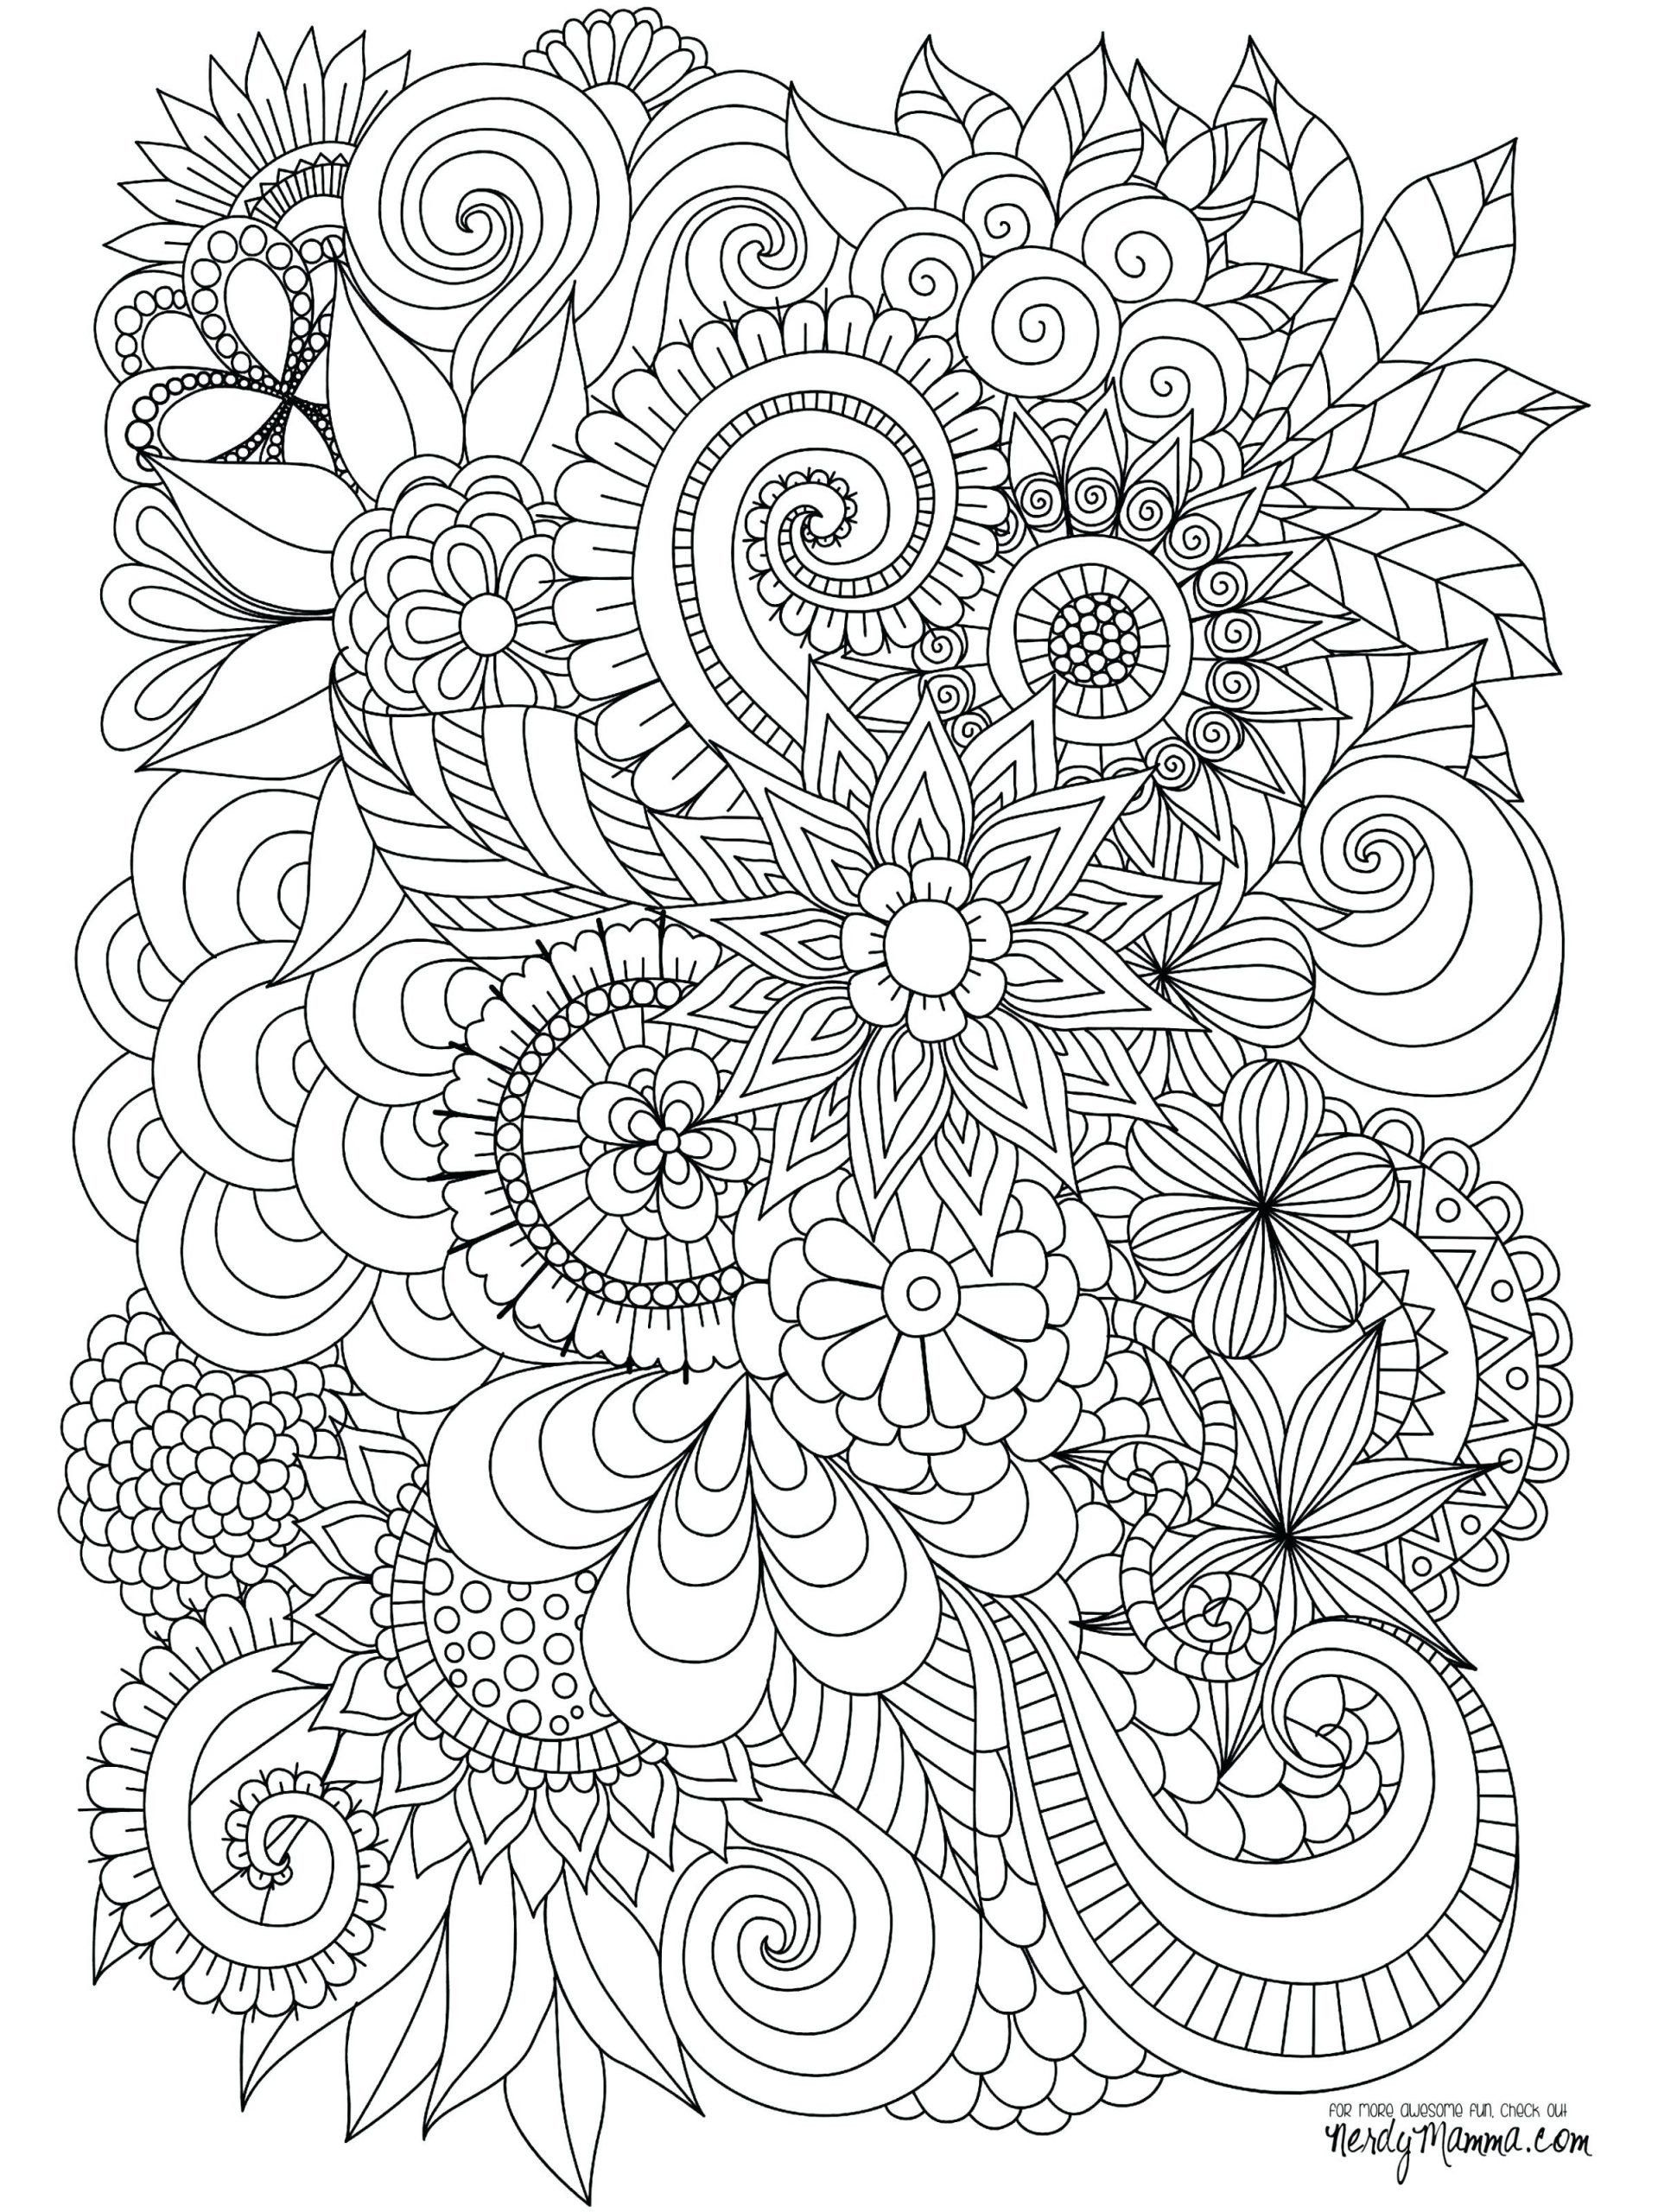 Big Mandala Coloring Pages Coloring Pages Christmas Mandala Coloring Pages Lotus Abstract Coloring Pages Detailed Coloring Pages Mandala Coloring Pages